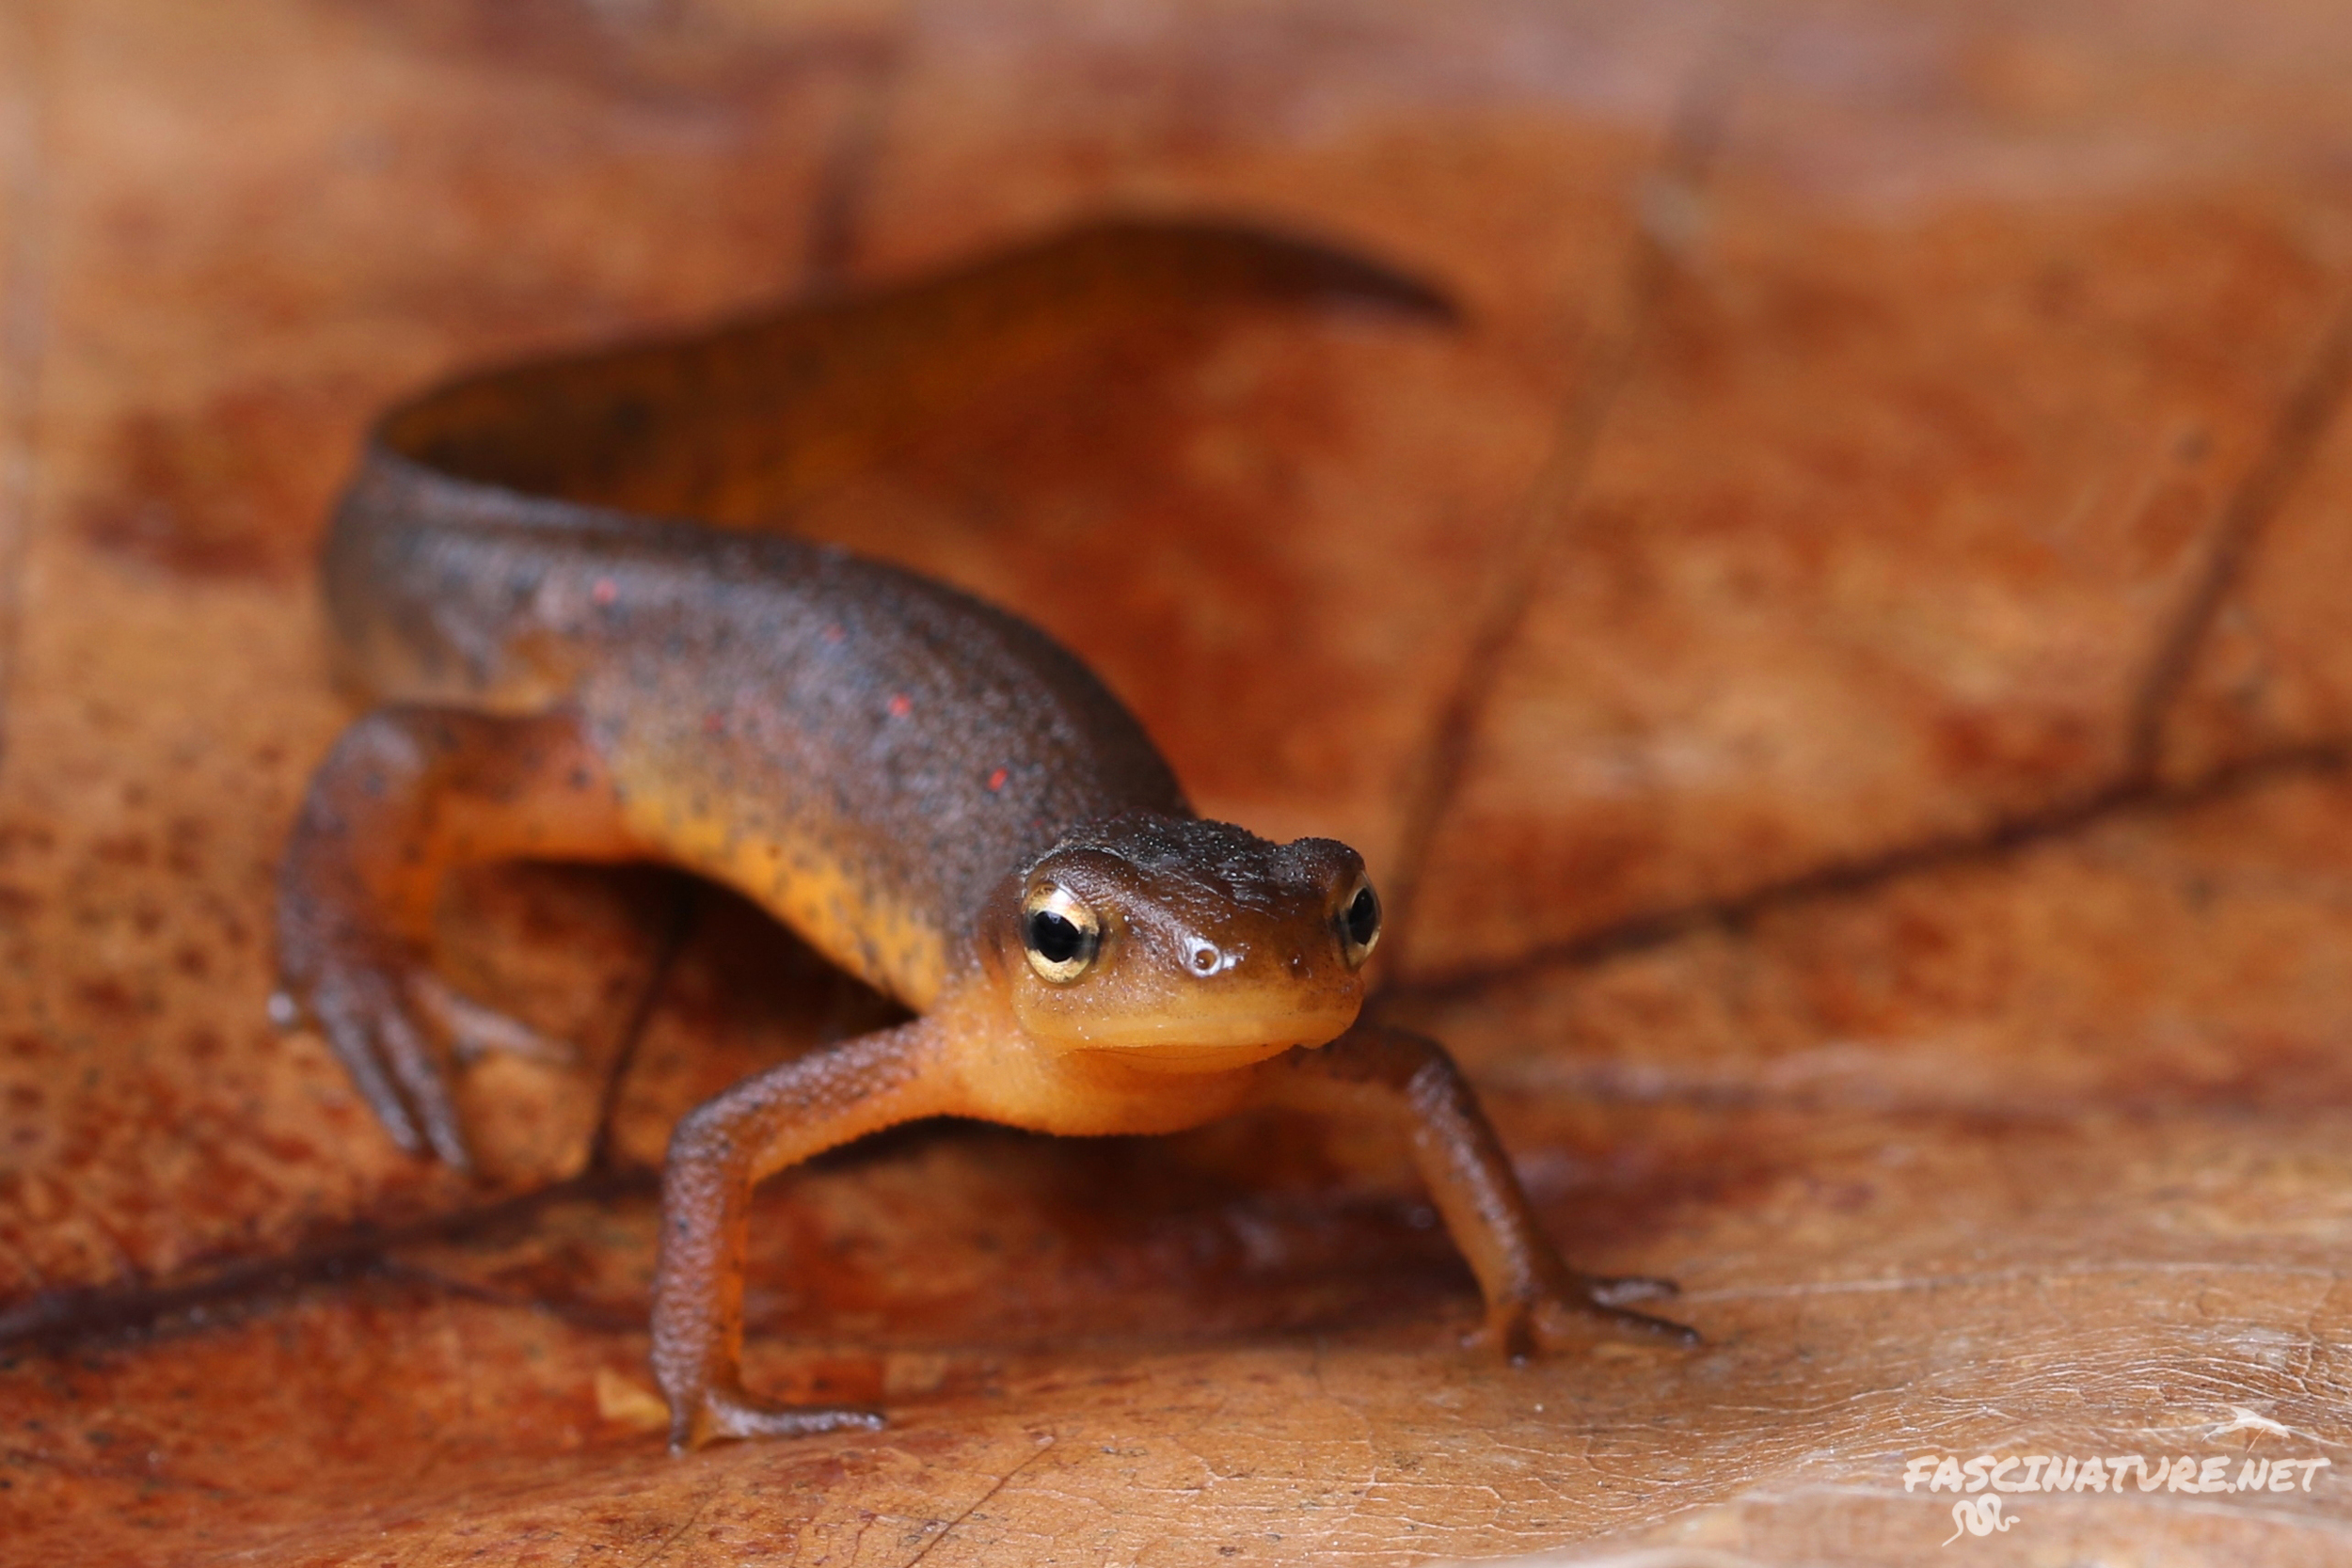 Red-spotted Newt - I've seen better looking individuals, but this is my first one encountered with my aforementioned new macro lens. I apologize for being bias towards the new photographs.